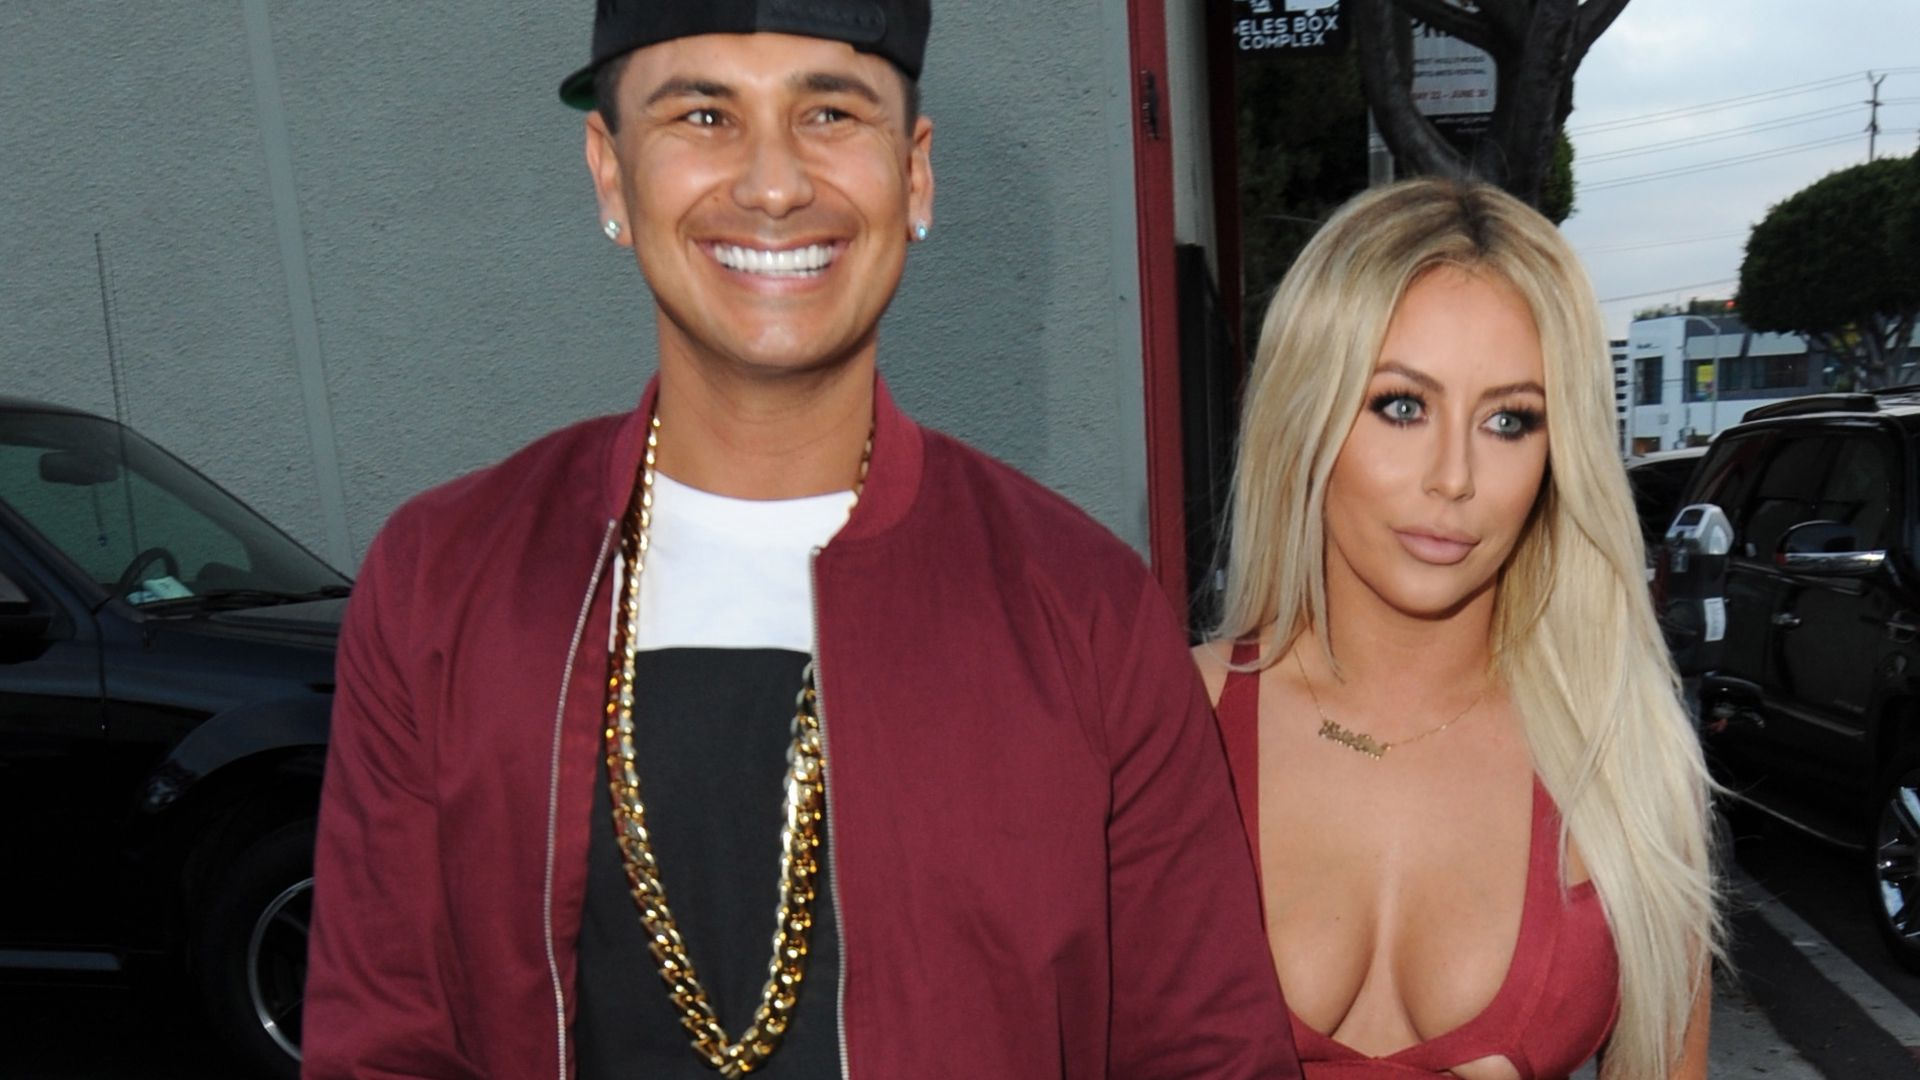 jersey-shore-star-pauly-d-hochzeit-in-neuer-reality-show